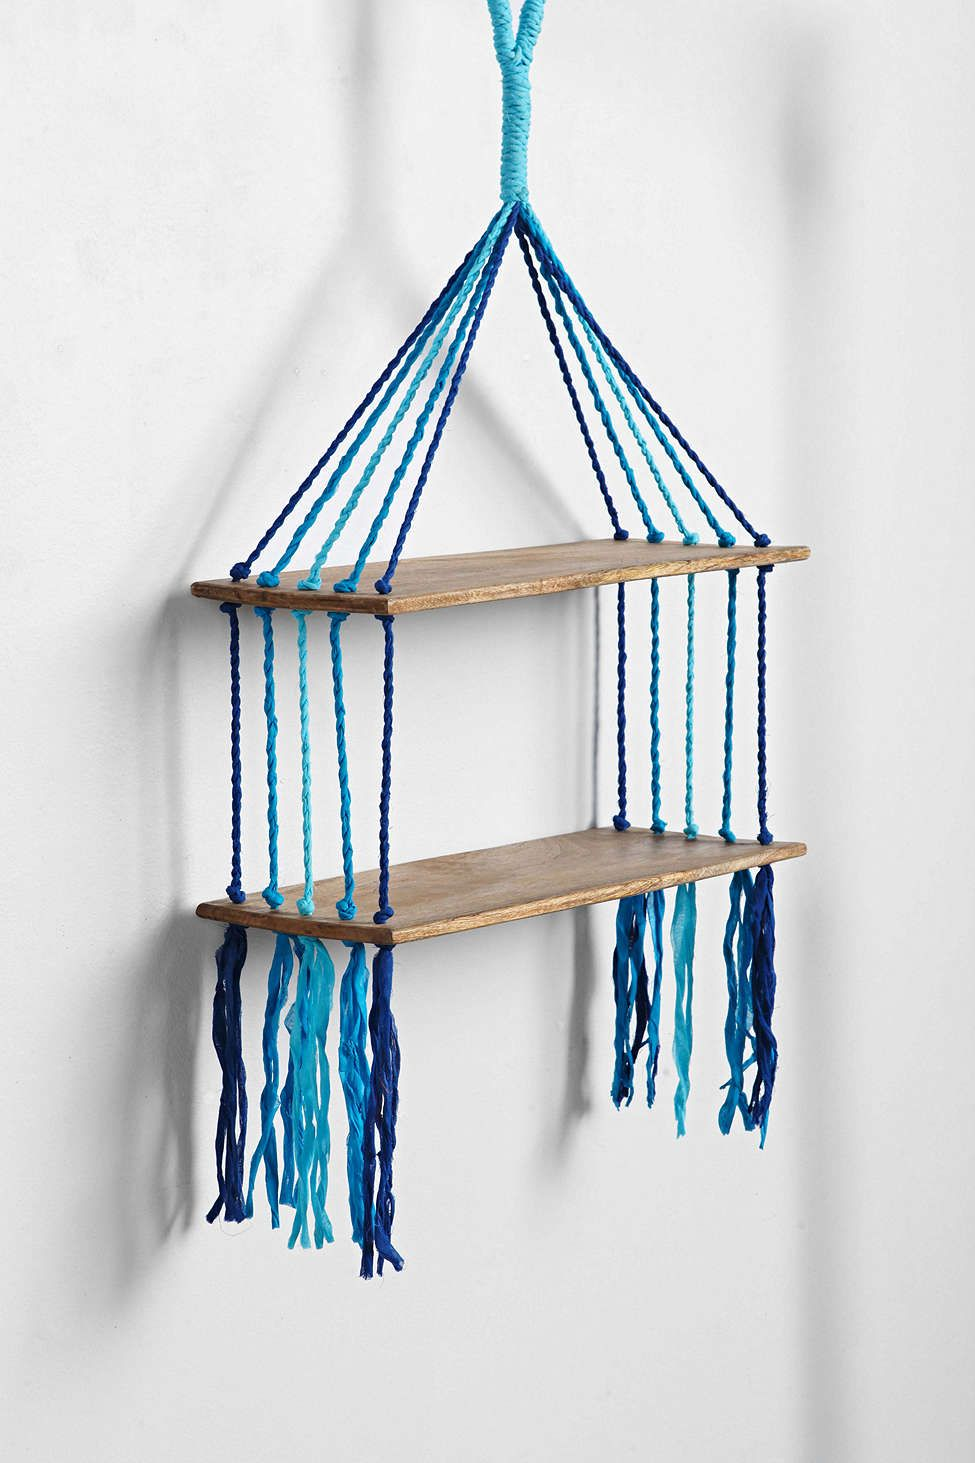 Magical Thinking Woven Hanging Shelf | Macrame and Urban ...